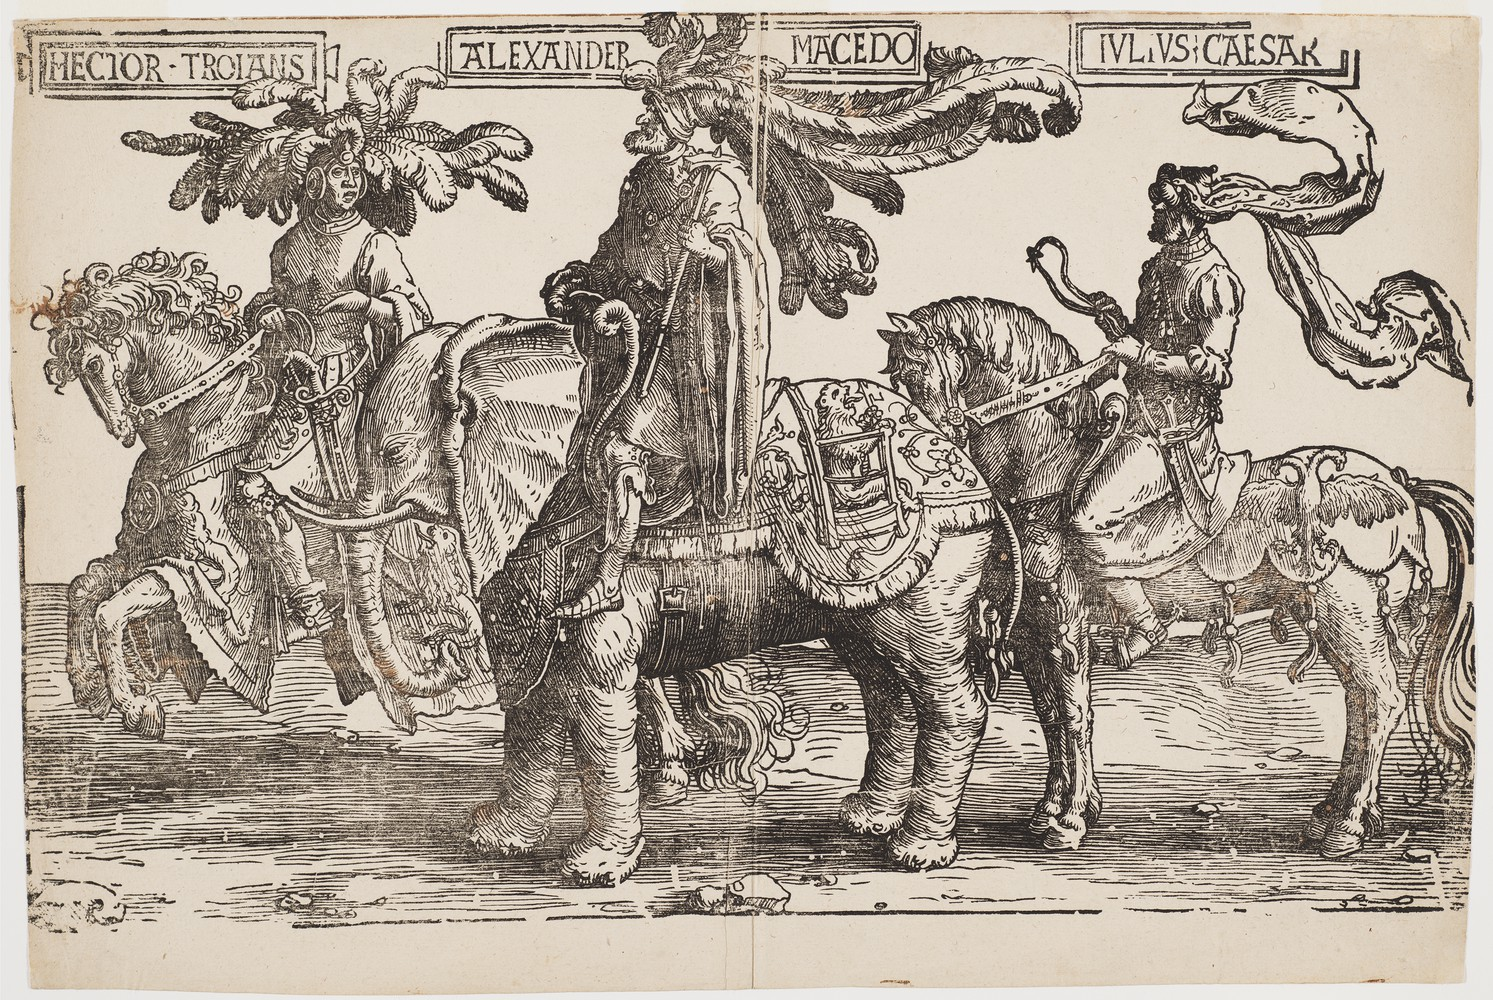 Hector of Troy, Alexander of Macedon, Julius Caesar (the pagan heroes on horseback), cr. 1520, Lucas van Leyden, Amsterdam, Netherlands